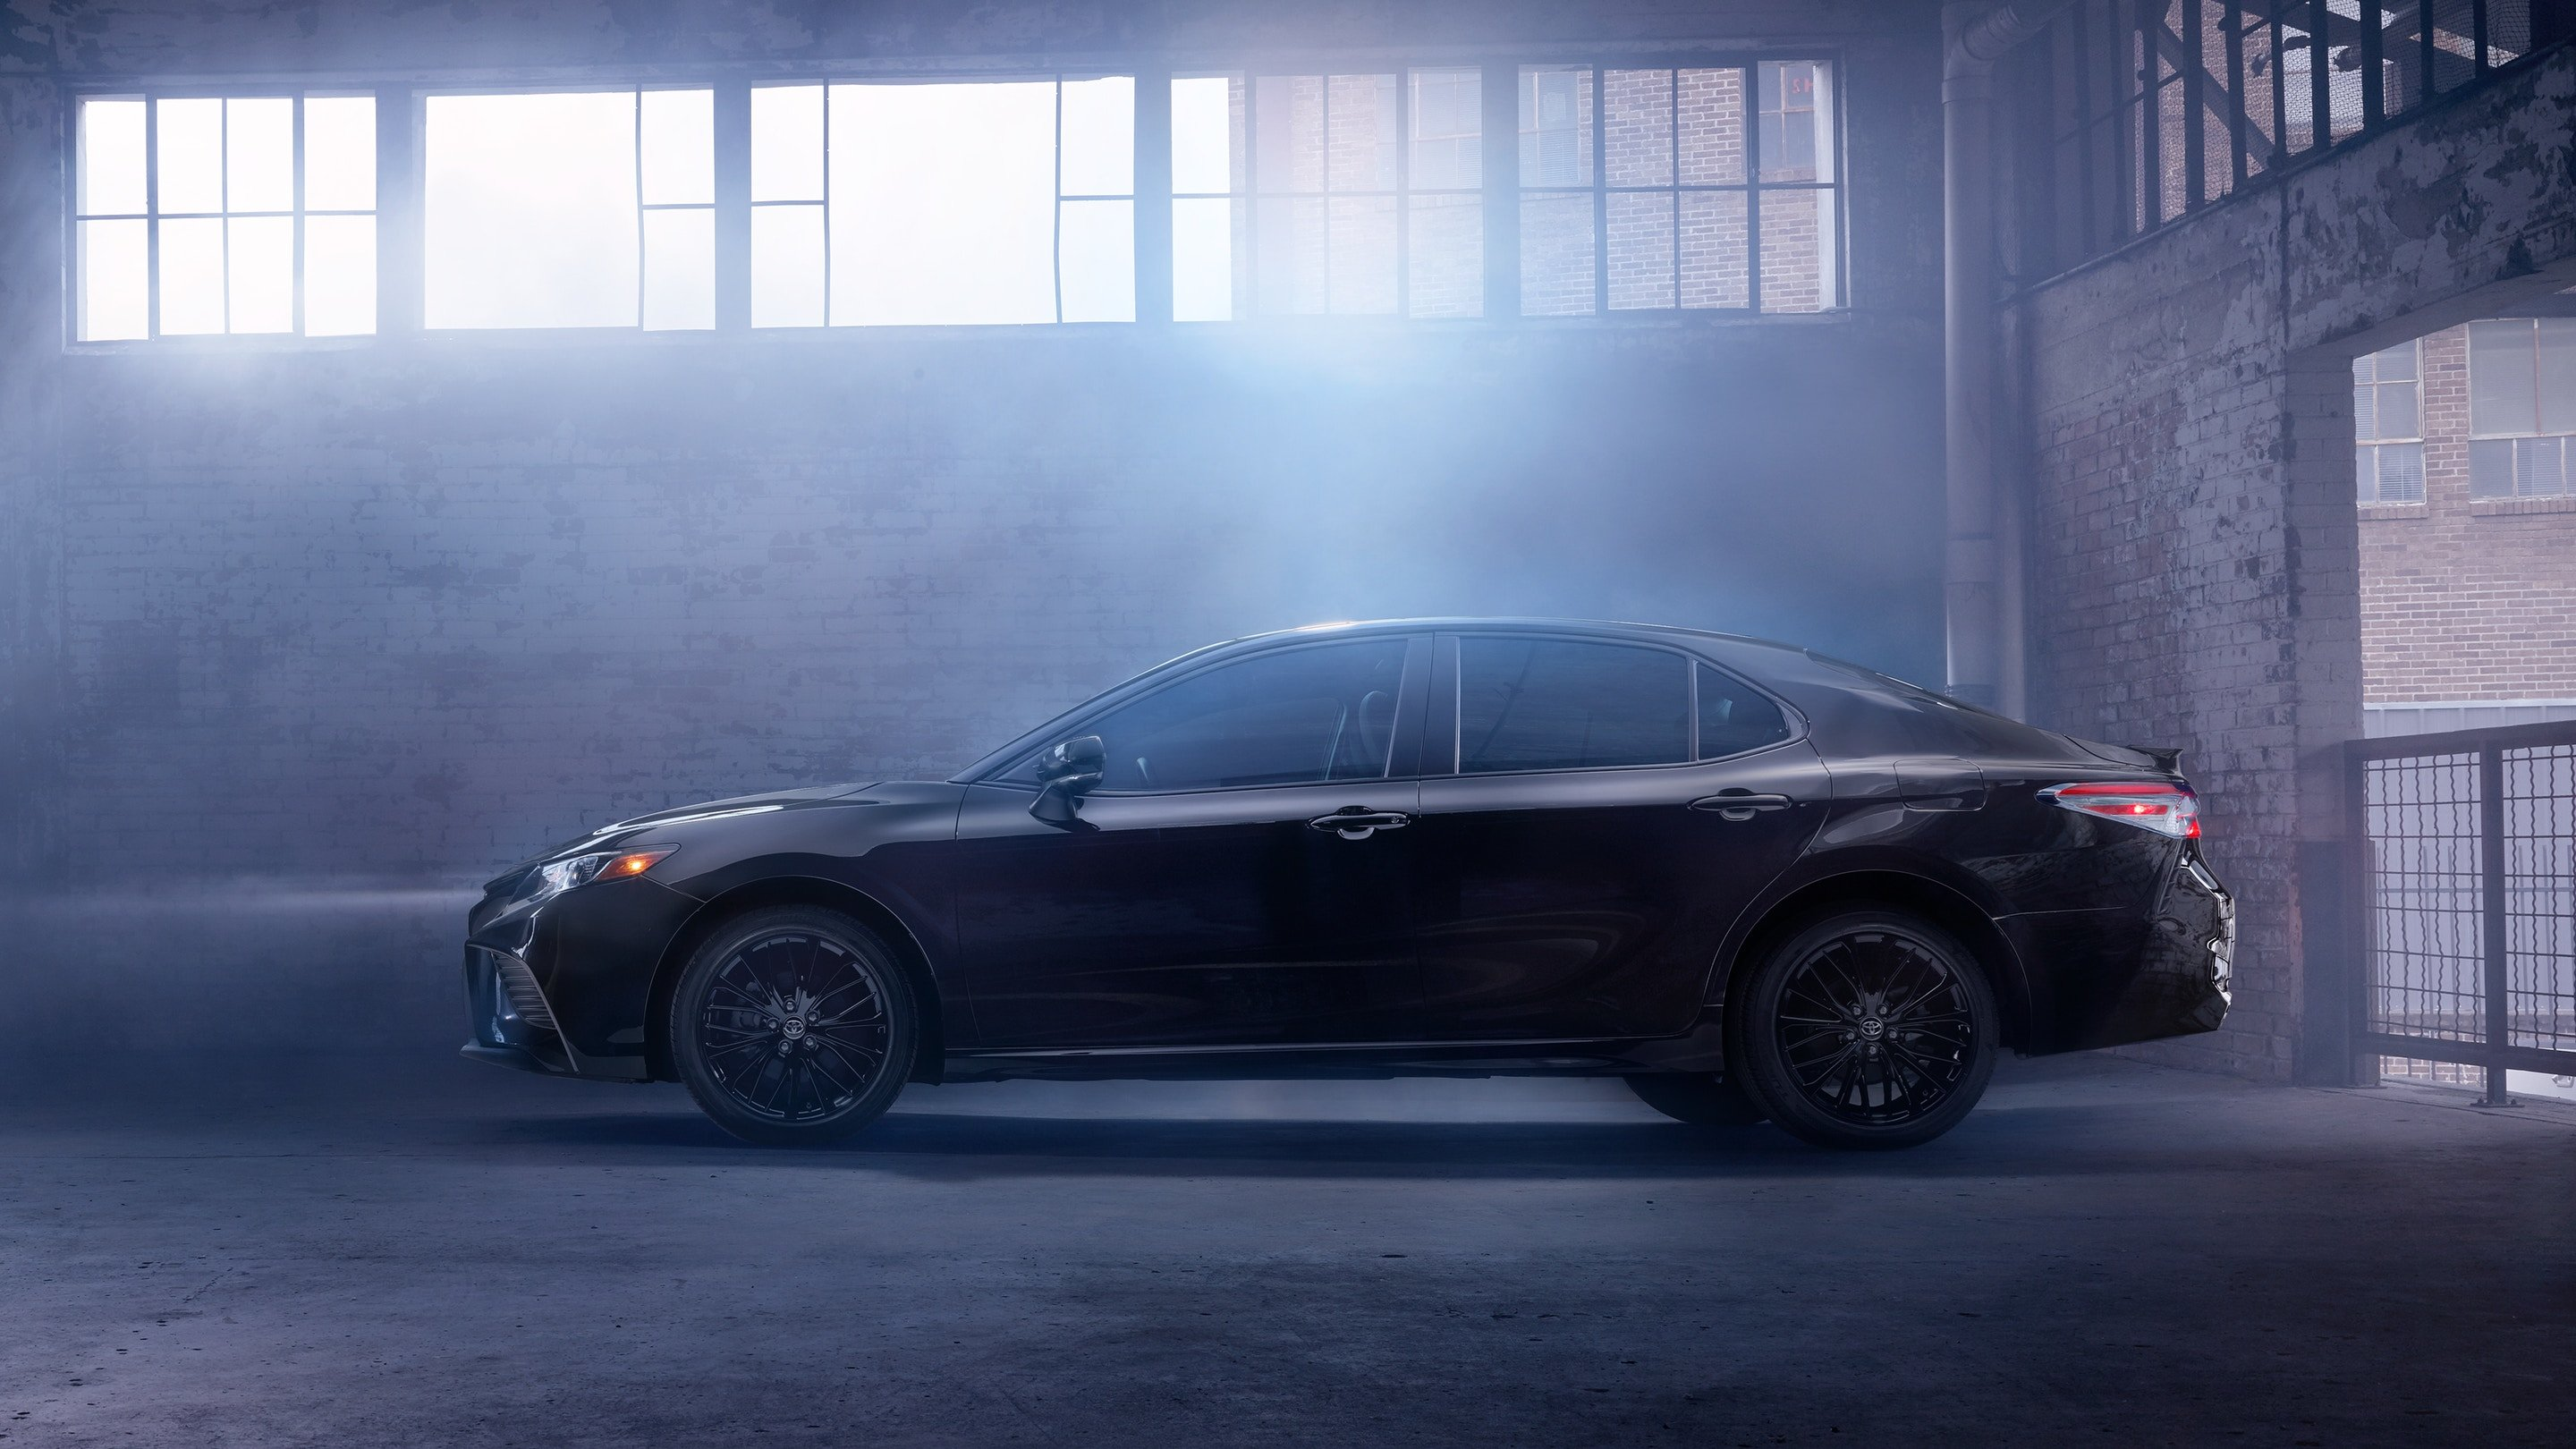 camry in smoke